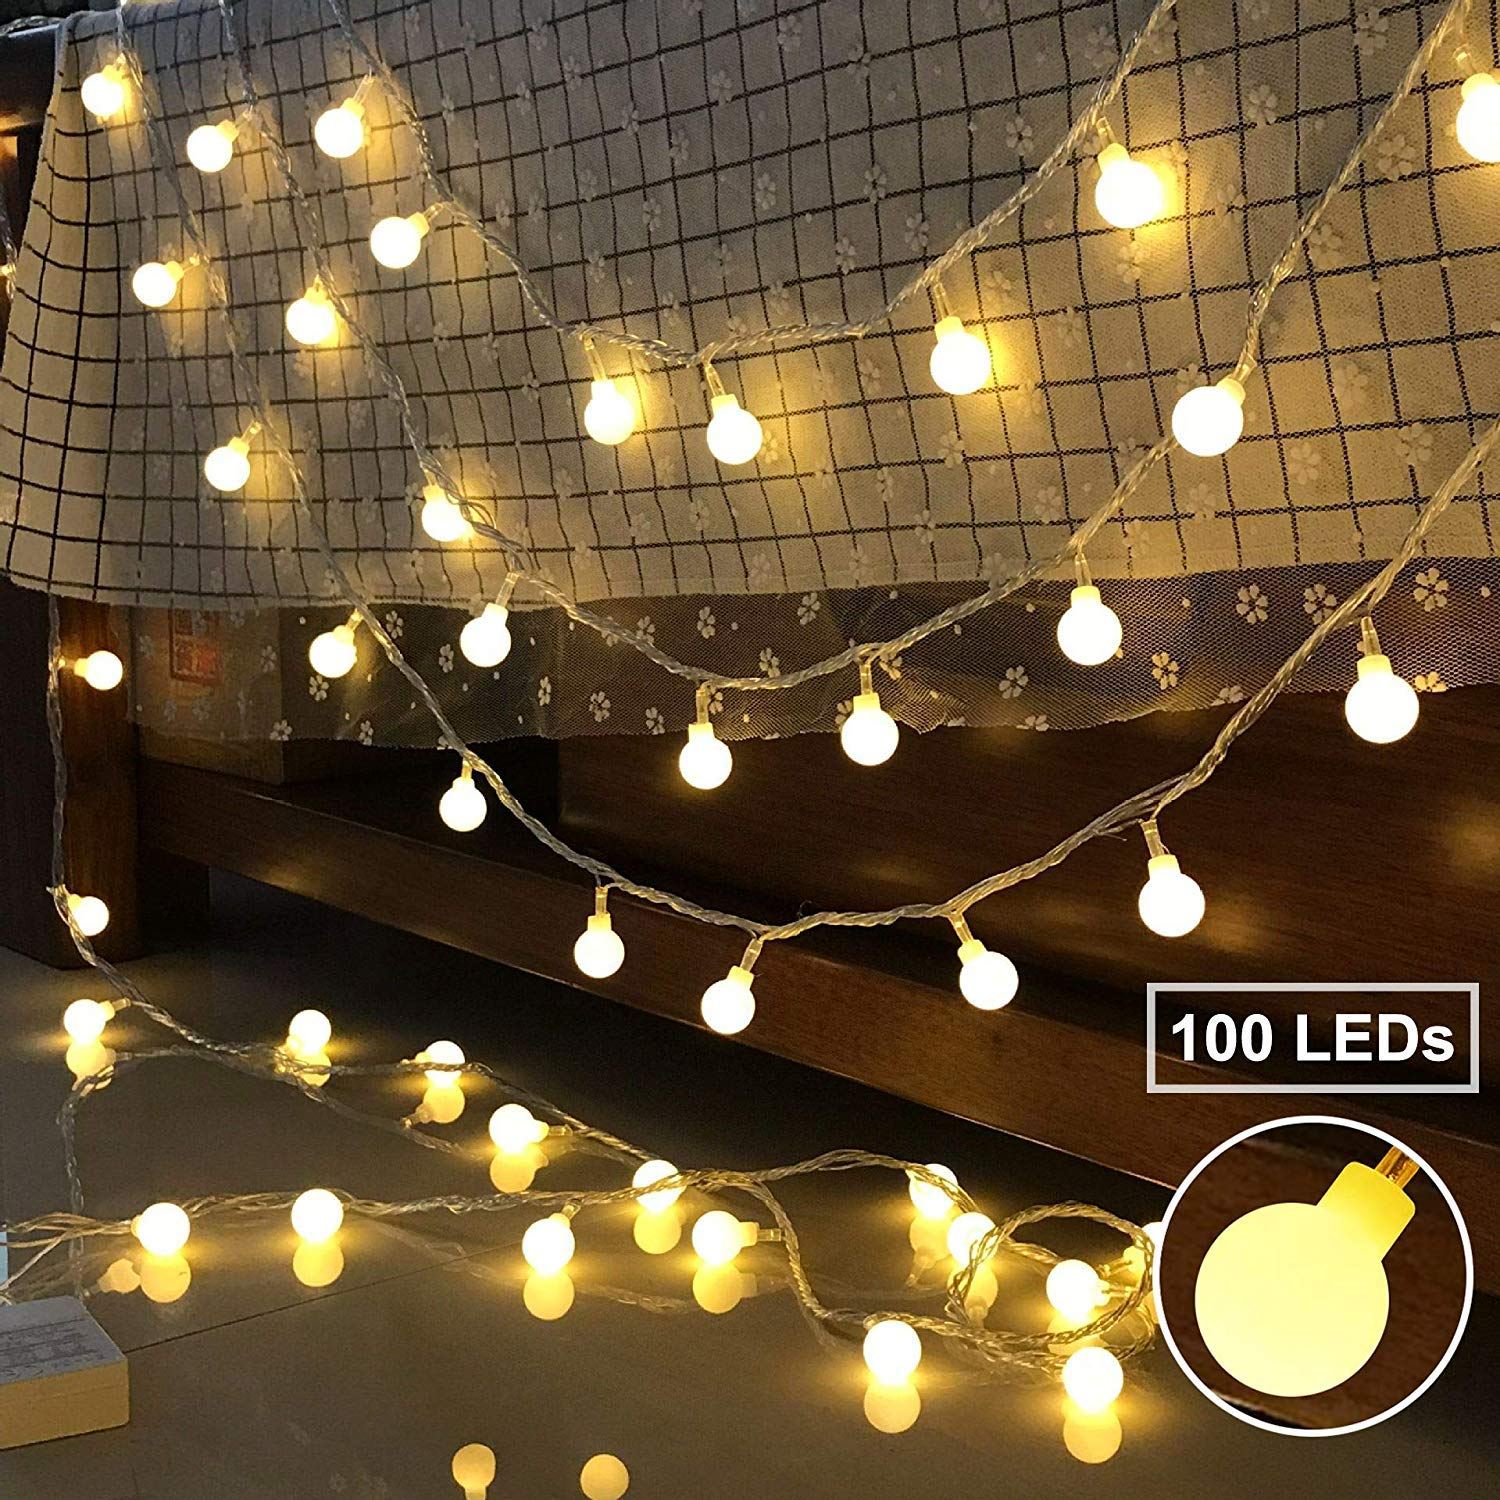 BeauFlw Globe String Lights 100 LED 10M,Waterproof Indoor String Lights with Remote Plug for Bedroom Garden Party Outdoor Decorations (Warm White)